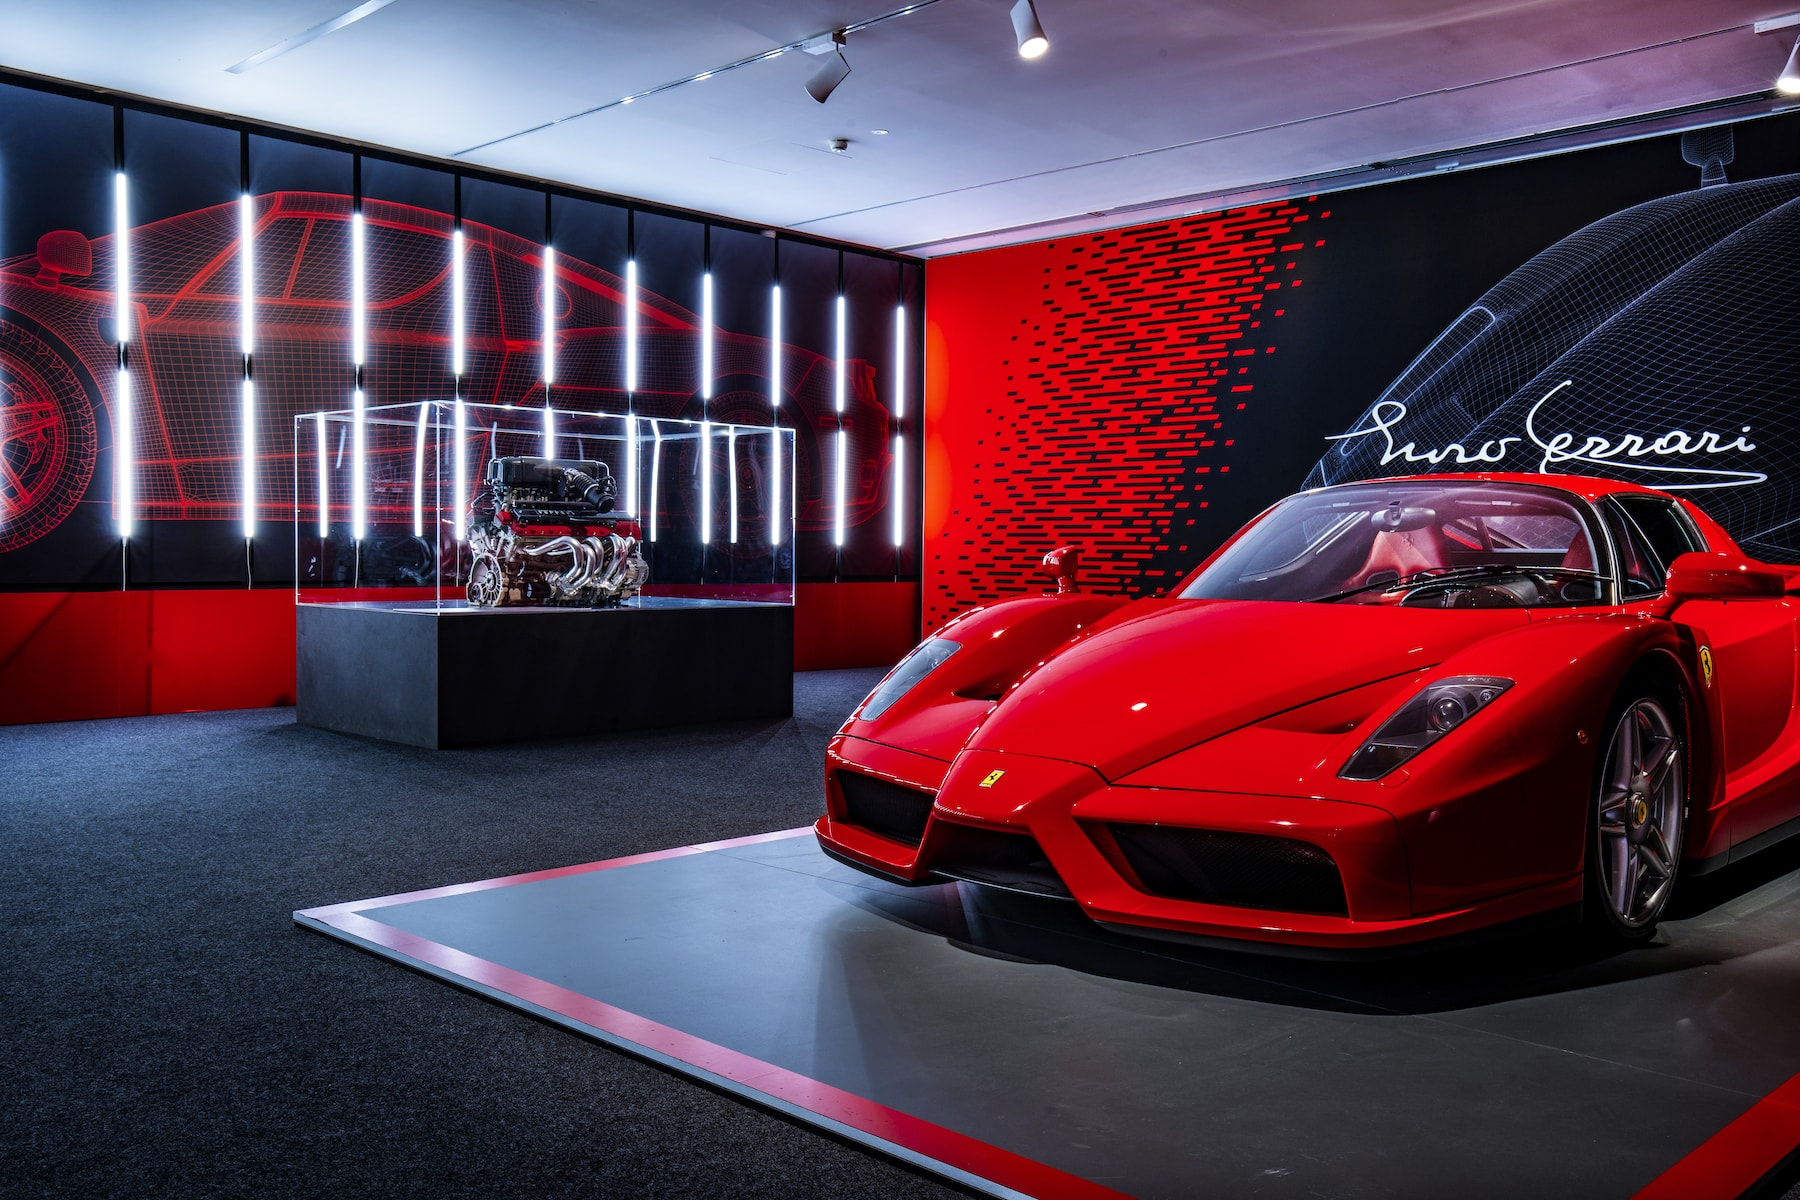 2019 Museo Ferrari 90 years exhibition 14.jpg